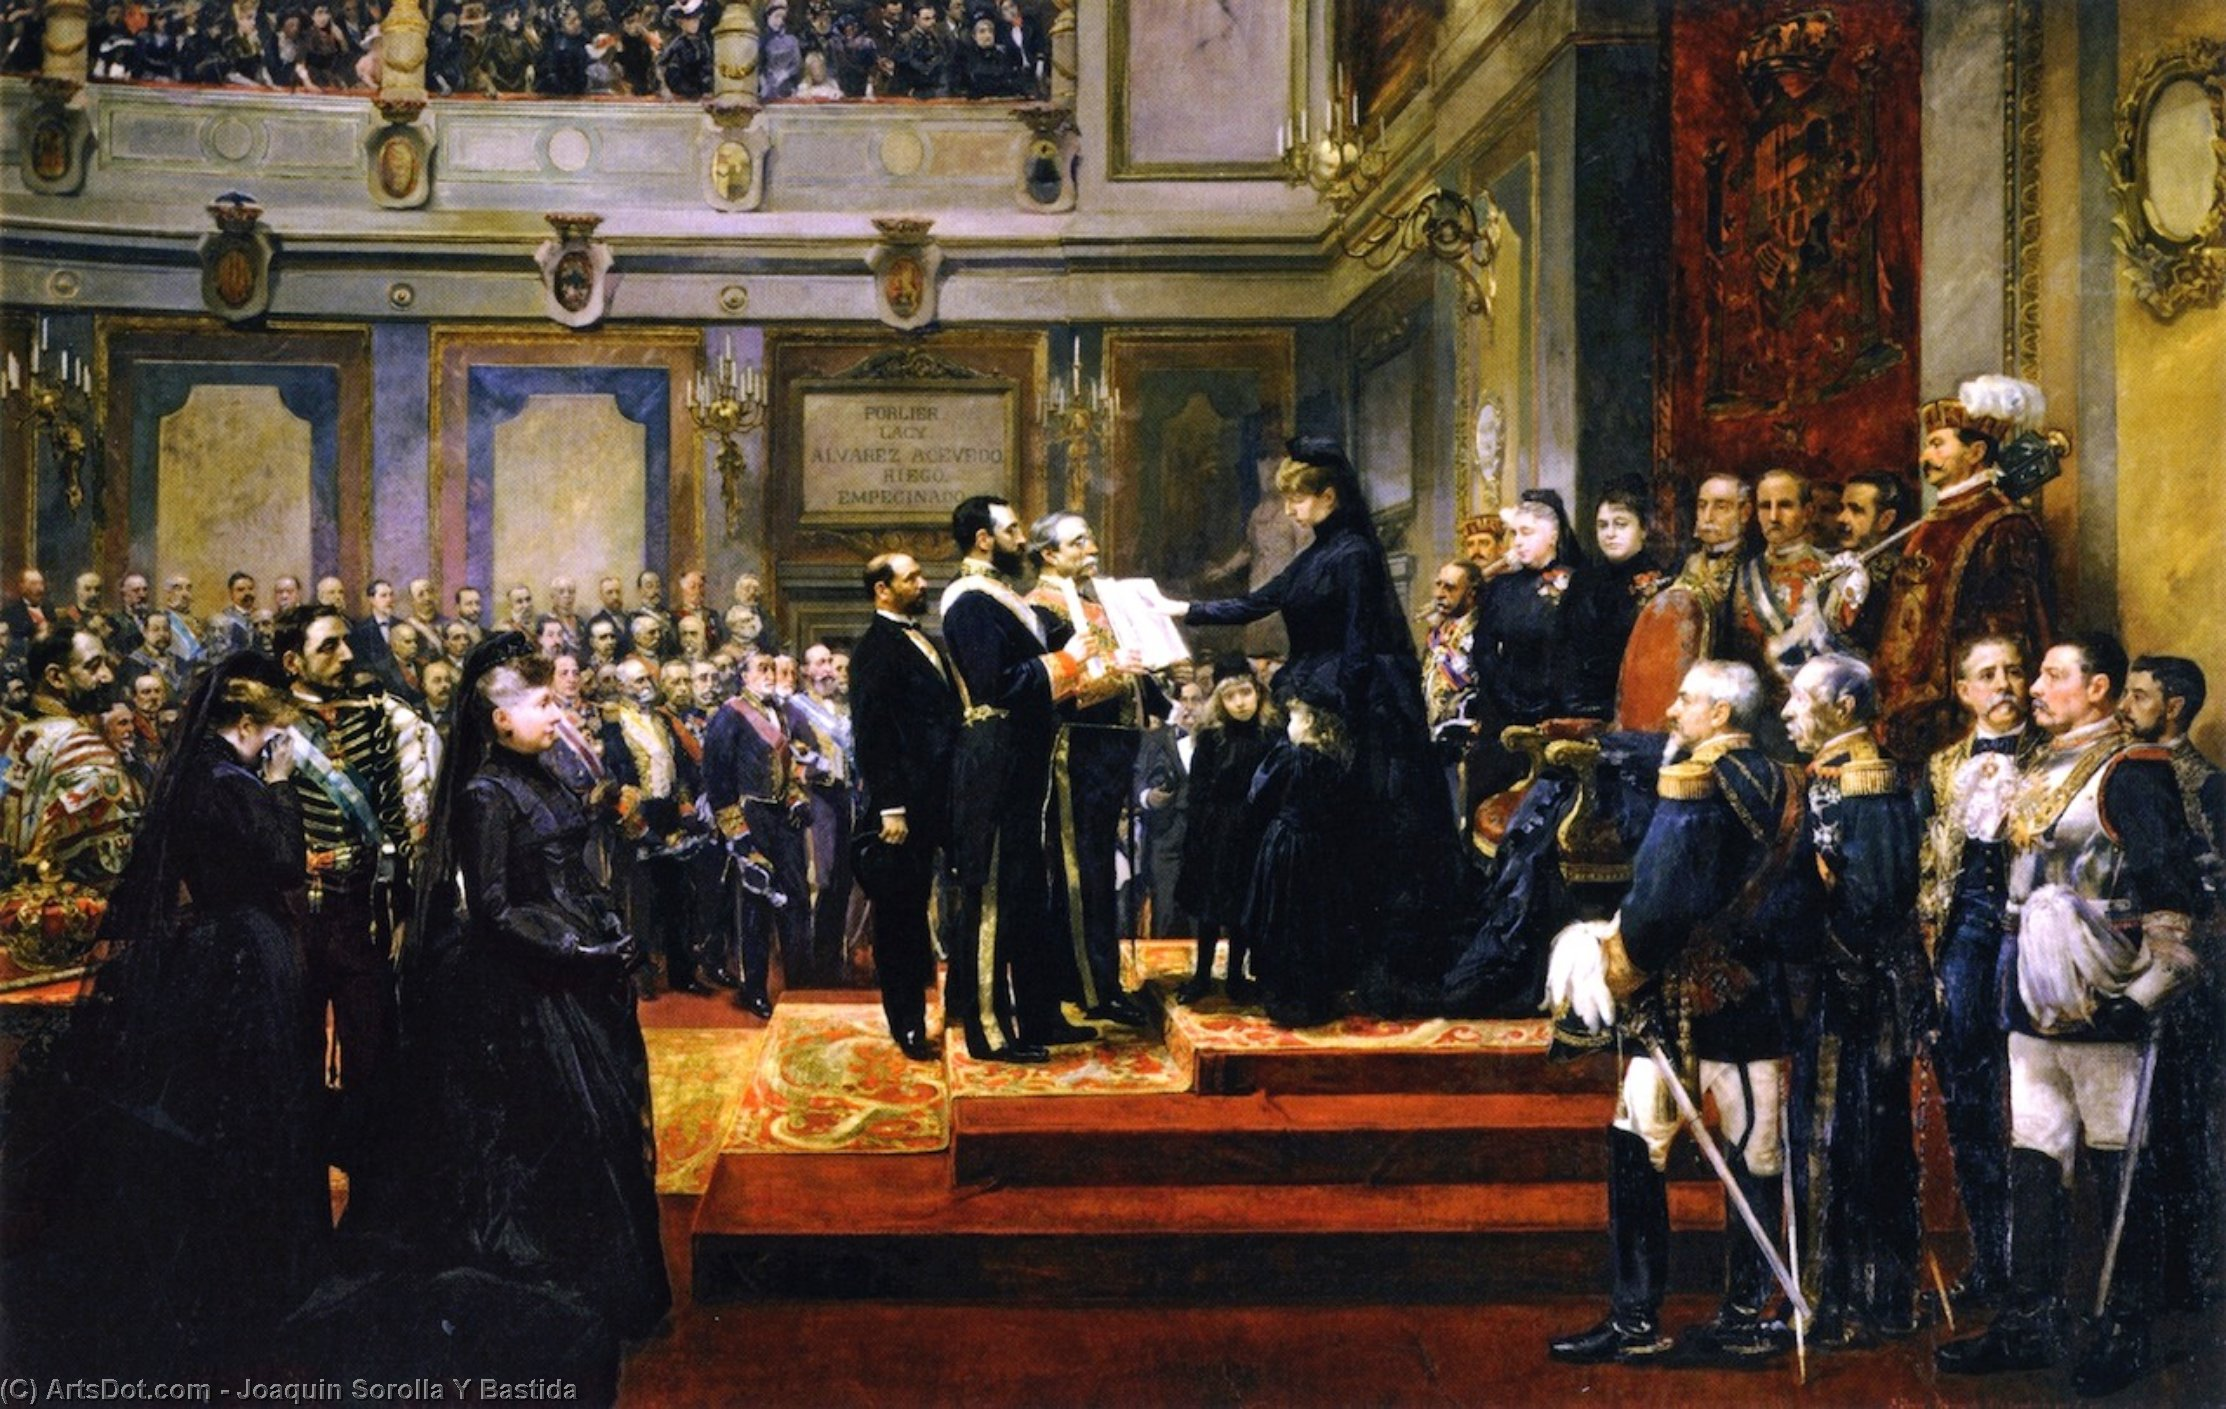 Pledge to the Constitution of 1876 by the Regent Maria Cristina of Hapsburg, Oil On Canvas by Joaquin Sorolla Y Bastida (1863-1923, Spain)